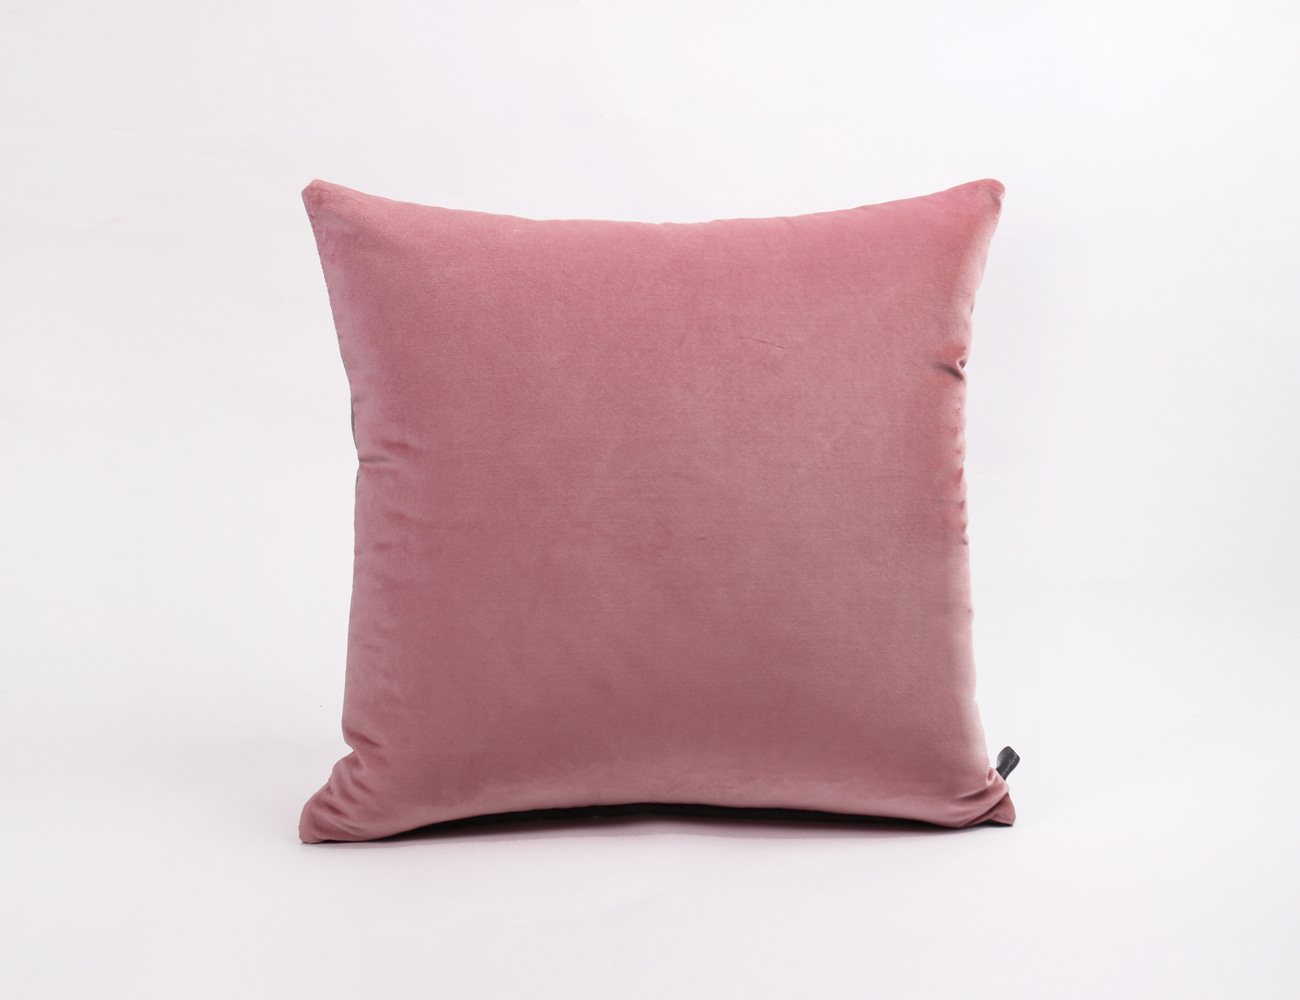 VELVET STITCH CUSHION_50x50 PINK